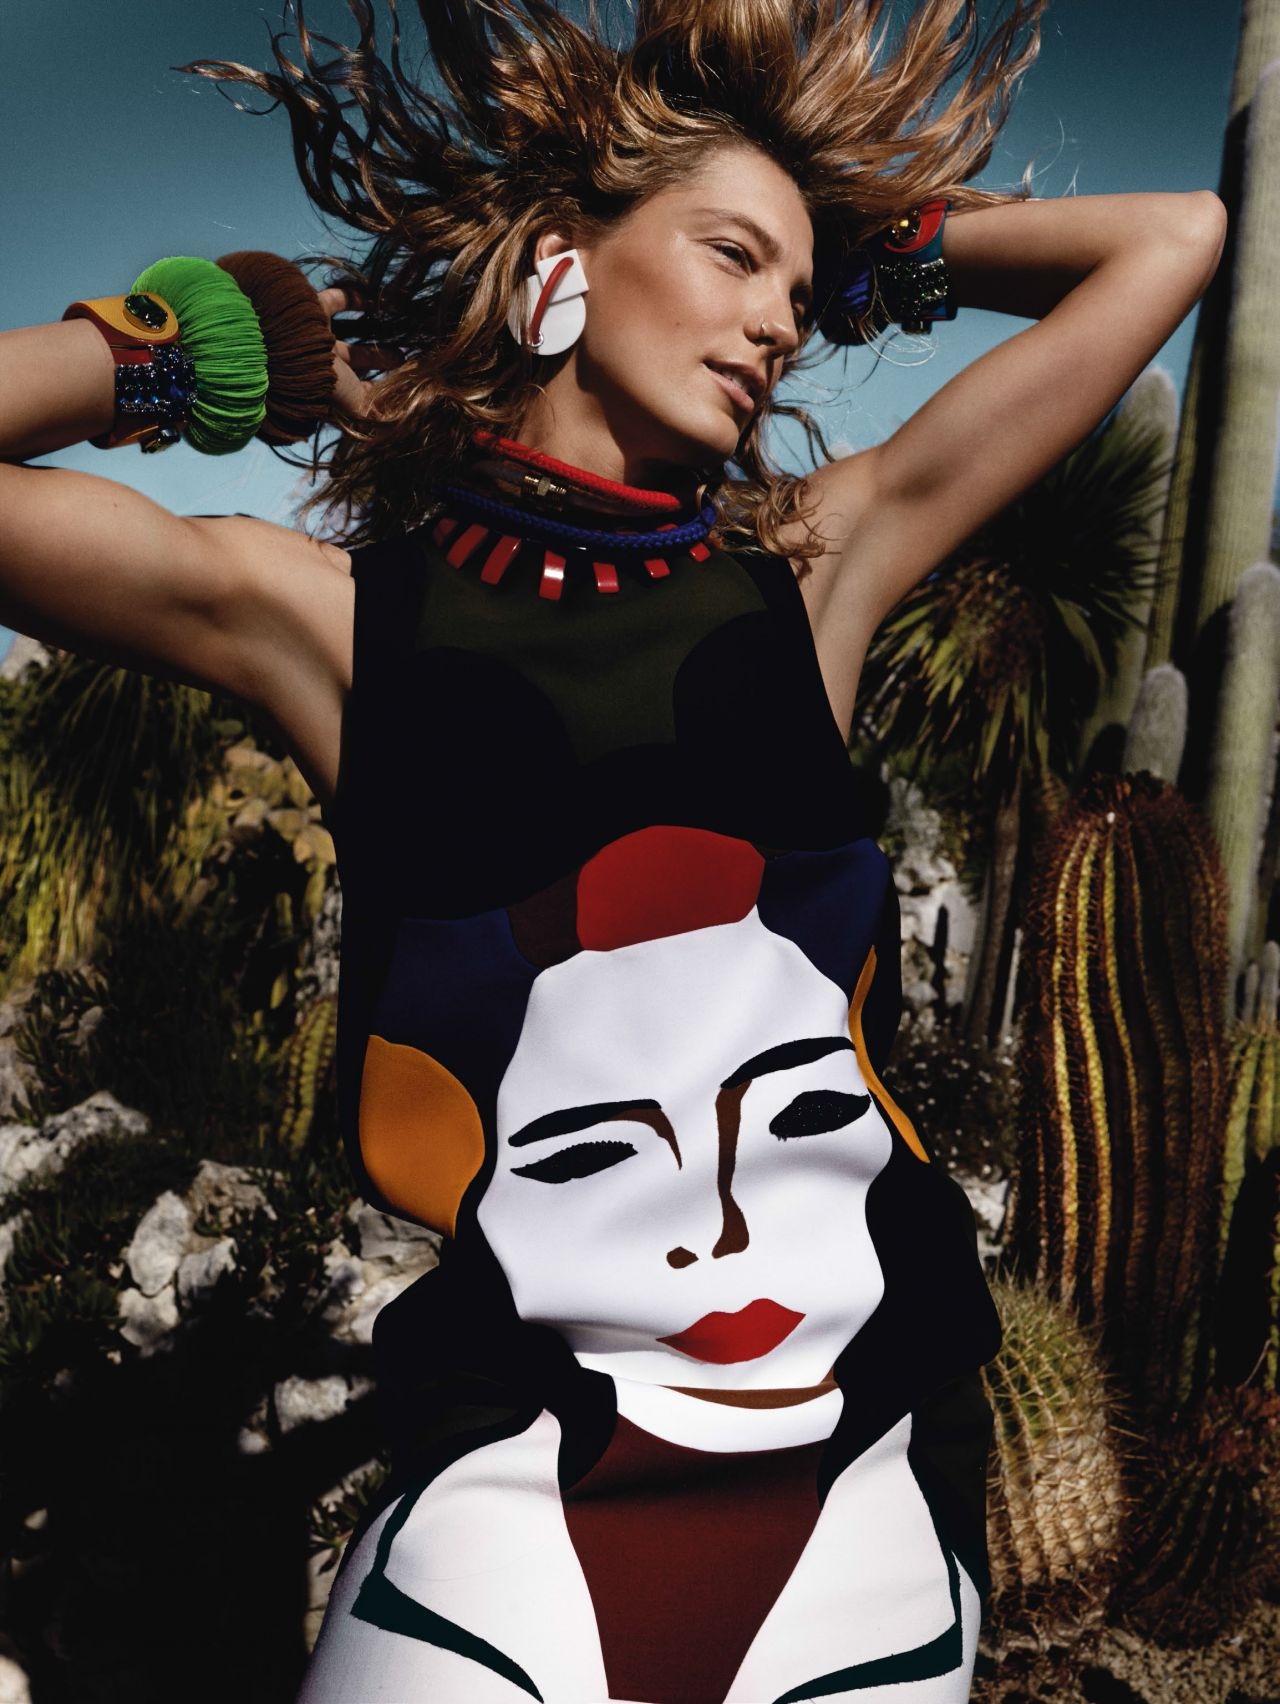 Daria Werbowy - Vogue Magazine (UK) - March 2014 - Photos by Mario Testino